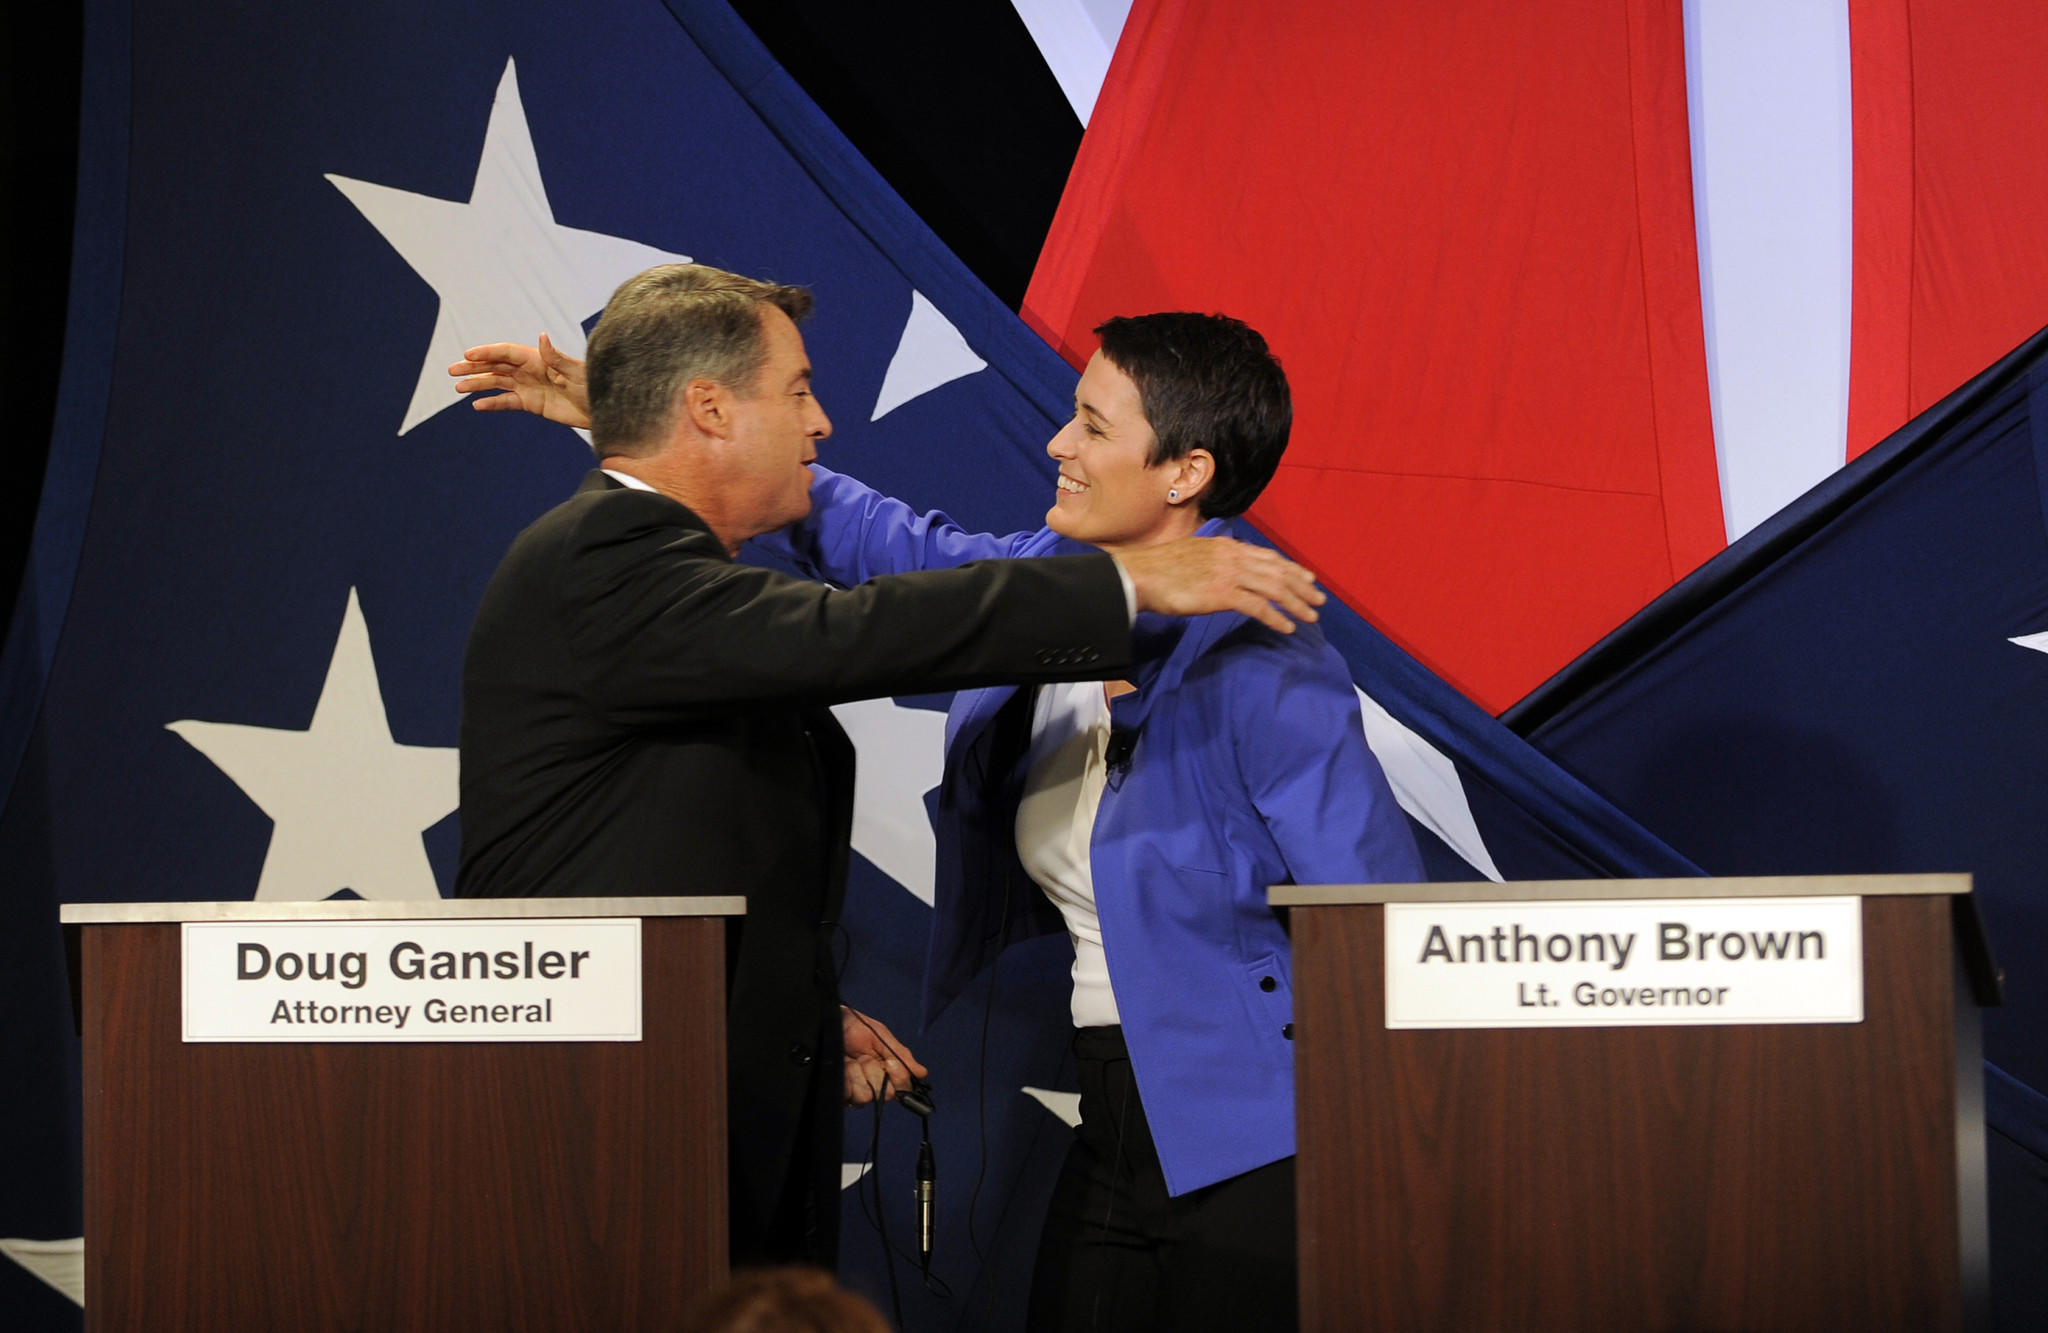 Gubernatorial candidates Attorney General Doug Gansler and Delegate Heather Mizeur embrace after debating each other across an empty podium for Lieutenant Governor Anthony Brown, who skipped the debate aired live on Fox 45.